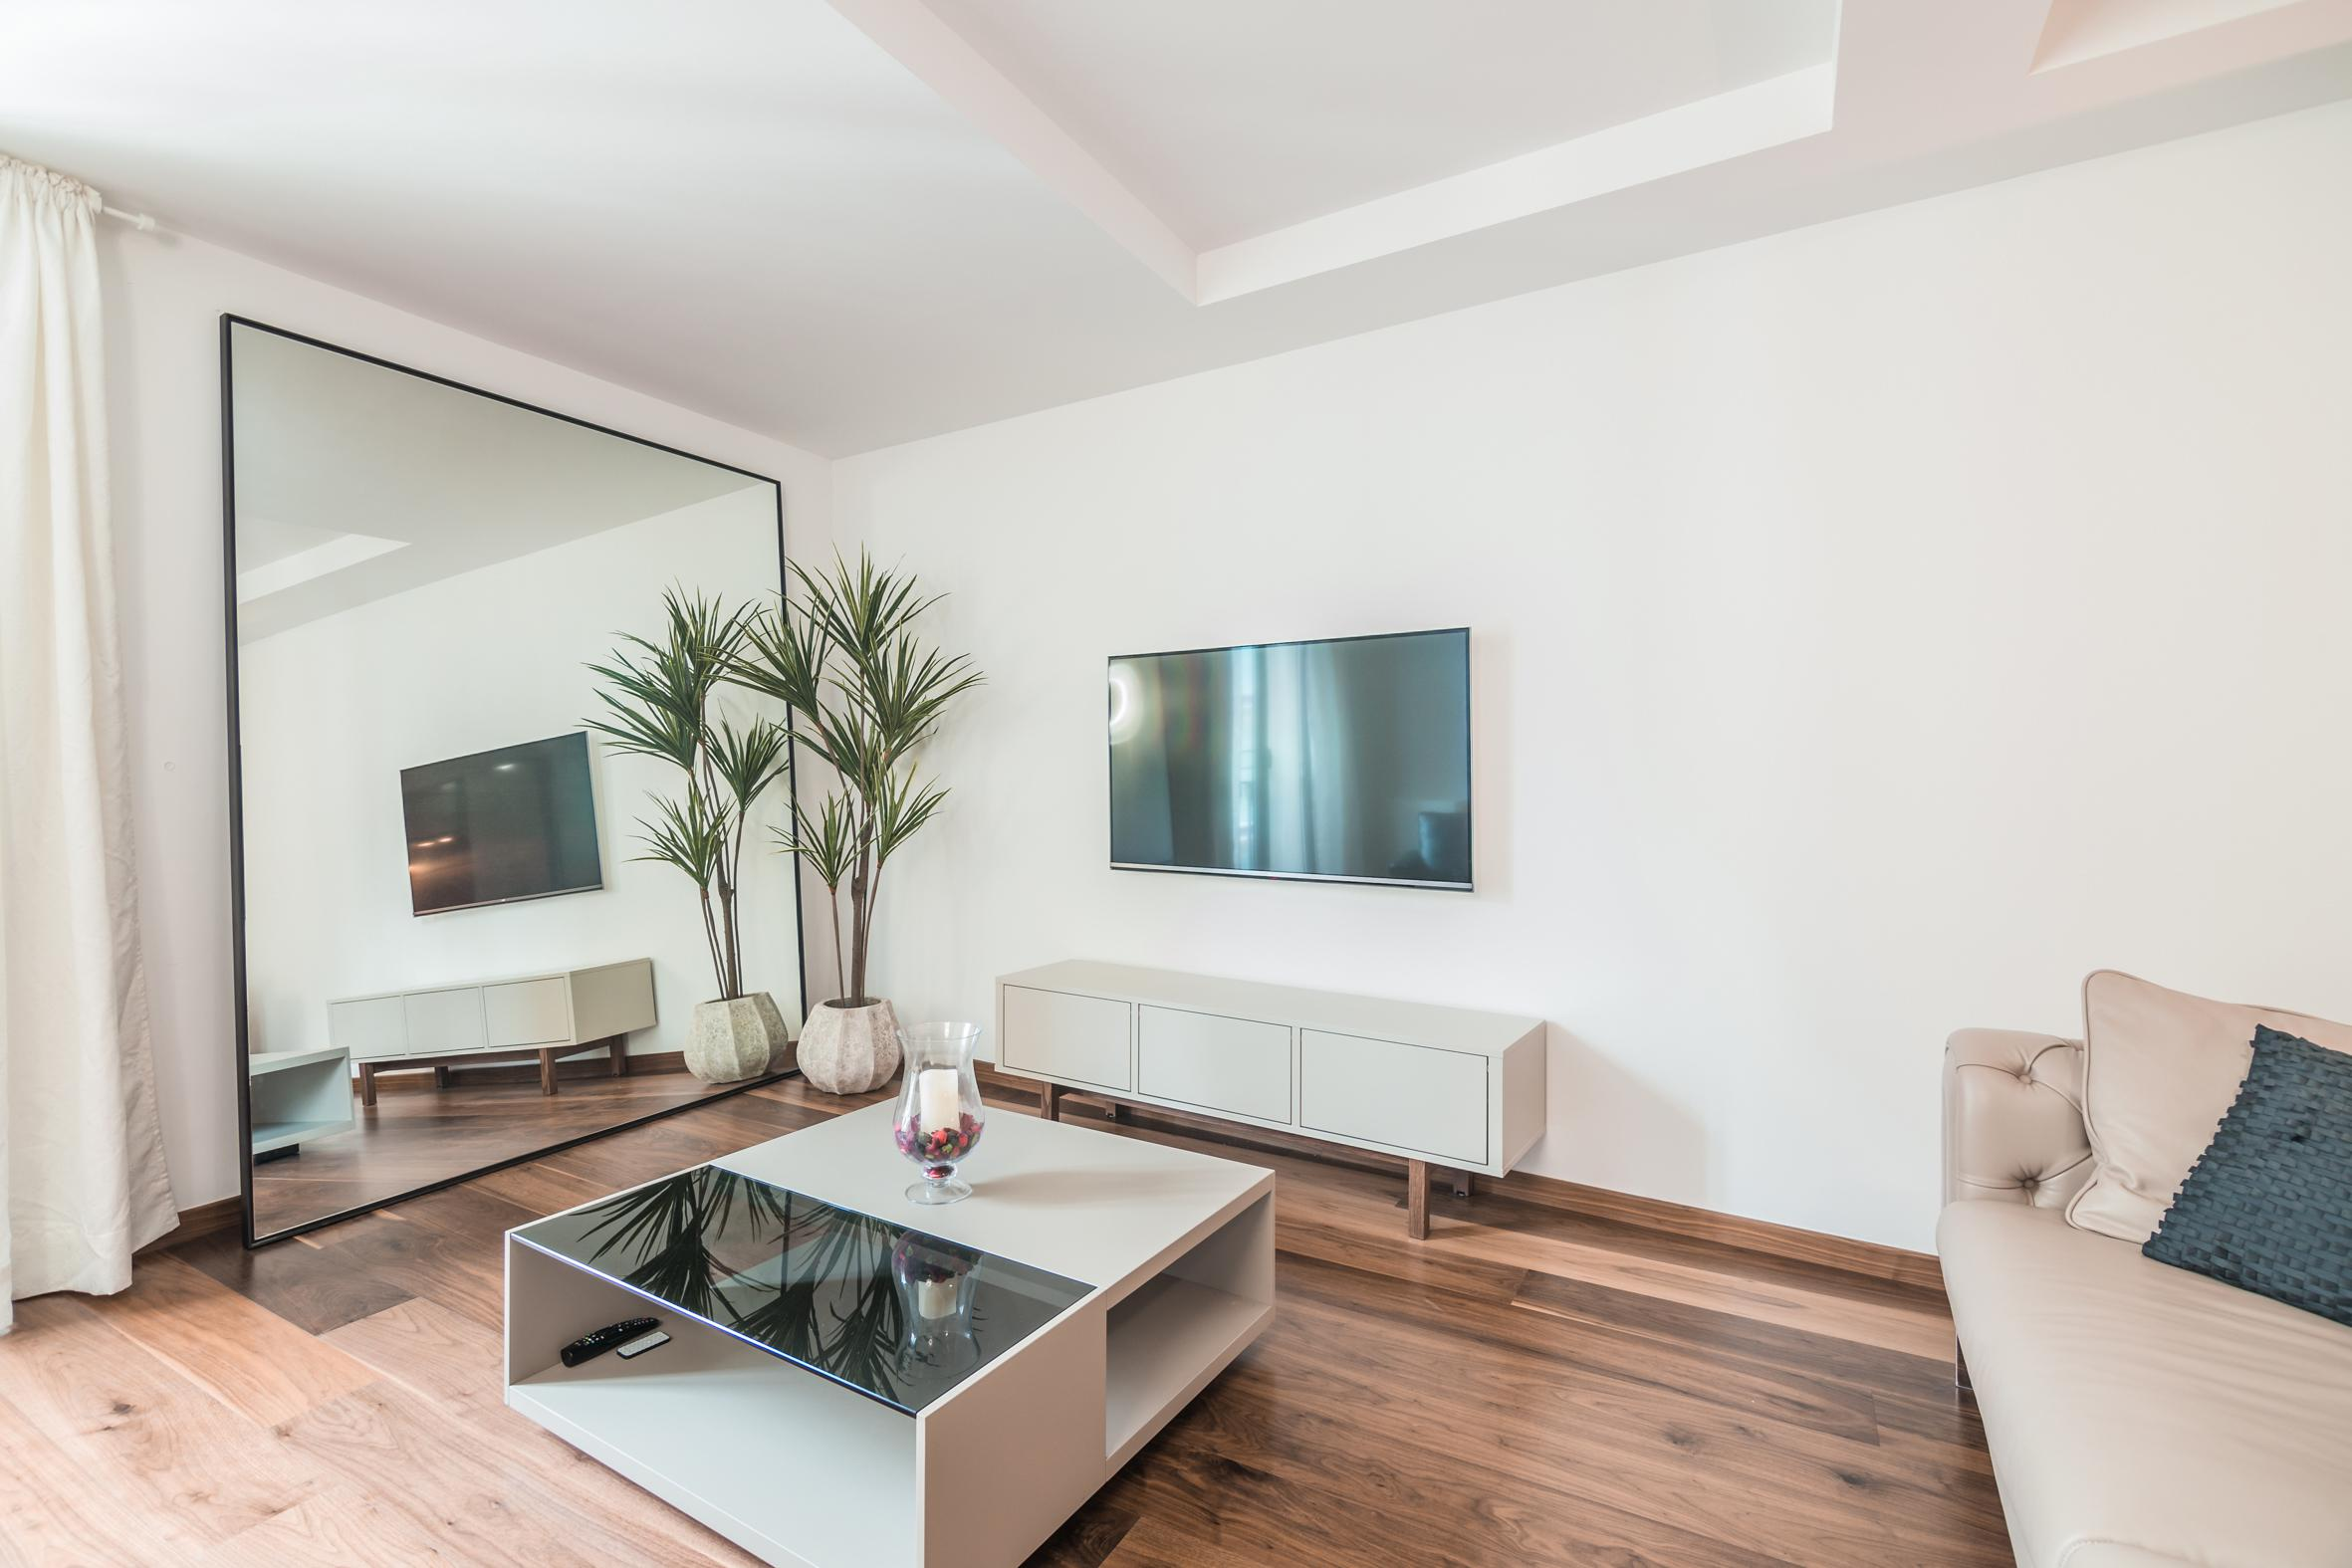 194056 Flat for sale in Ciutat Vella, Barri Gótic 24